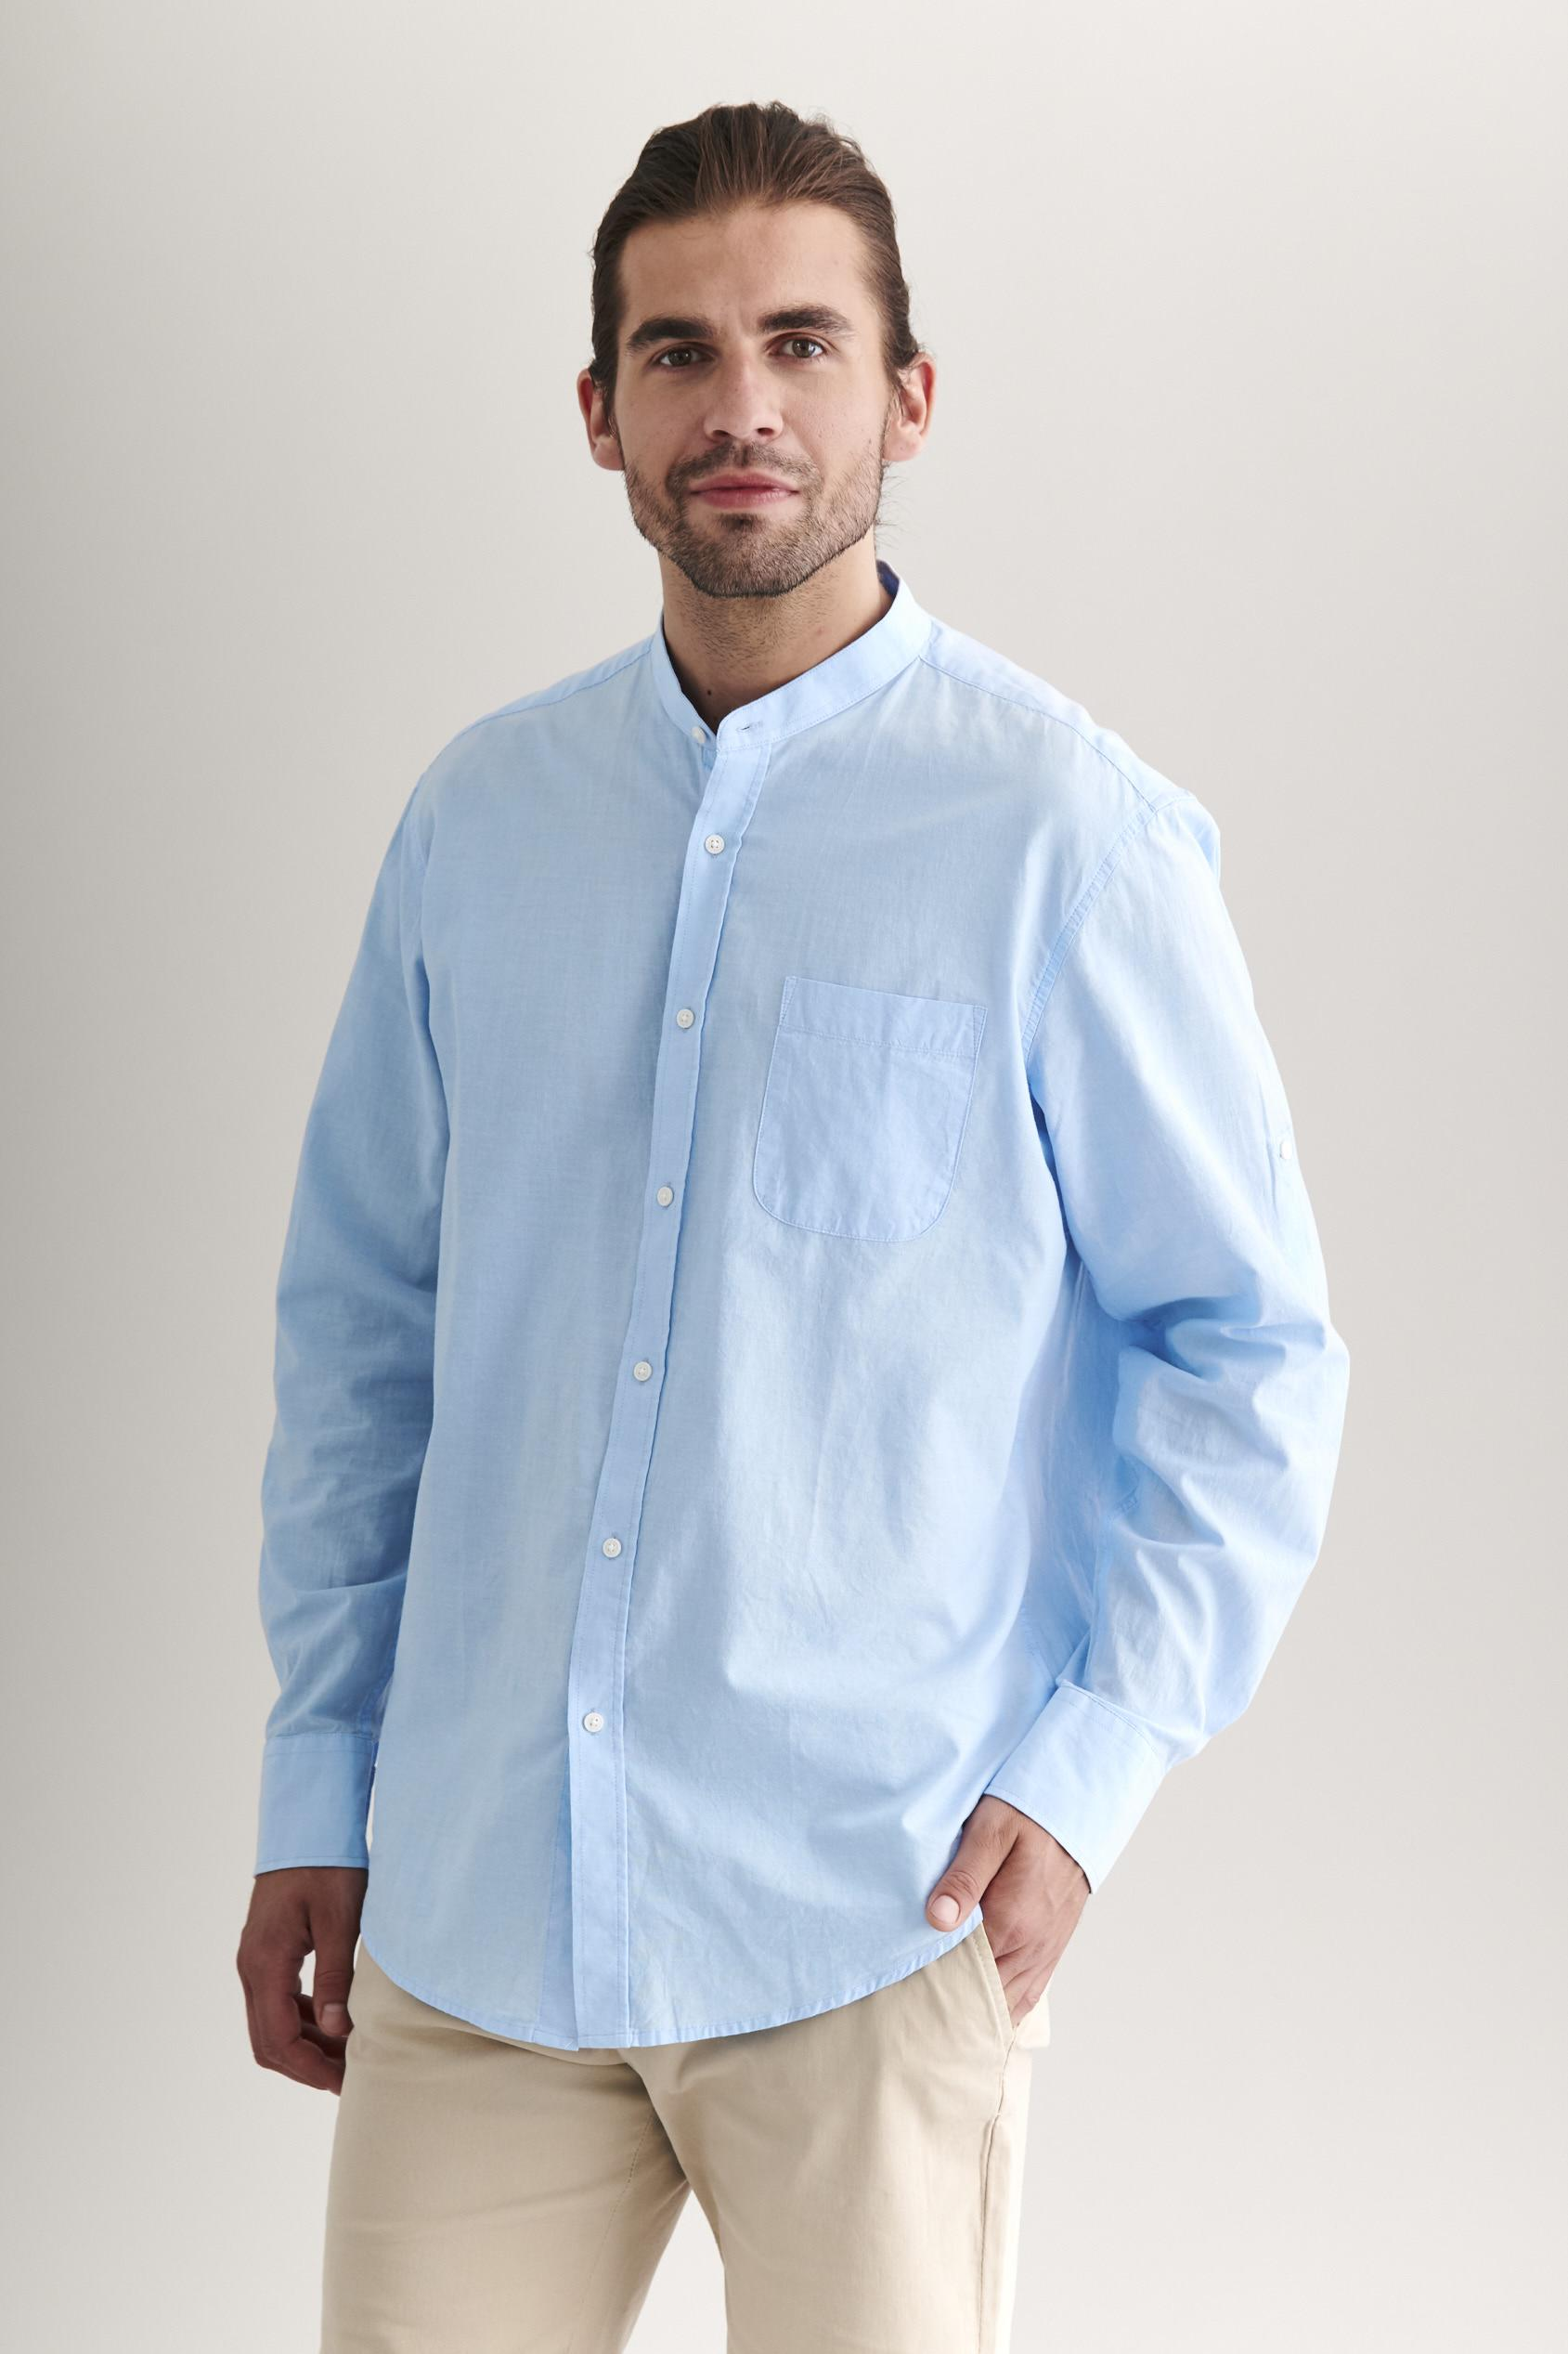 MEN'S SHIRT WITH A STAND-UP COLLAR ADAM 2 CLASSIC